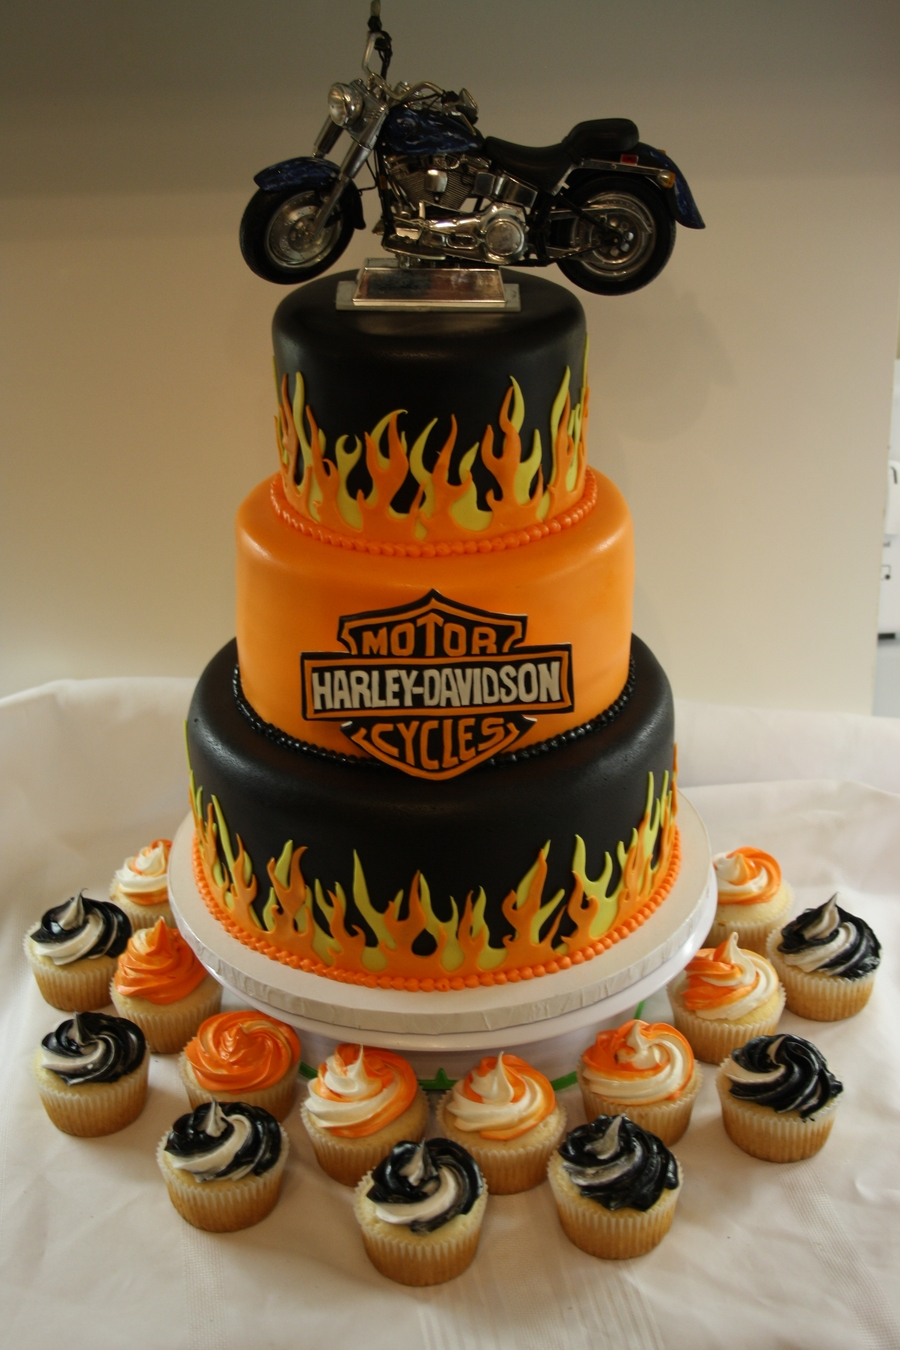 Motorcycle 50th Birthday Cake Idea